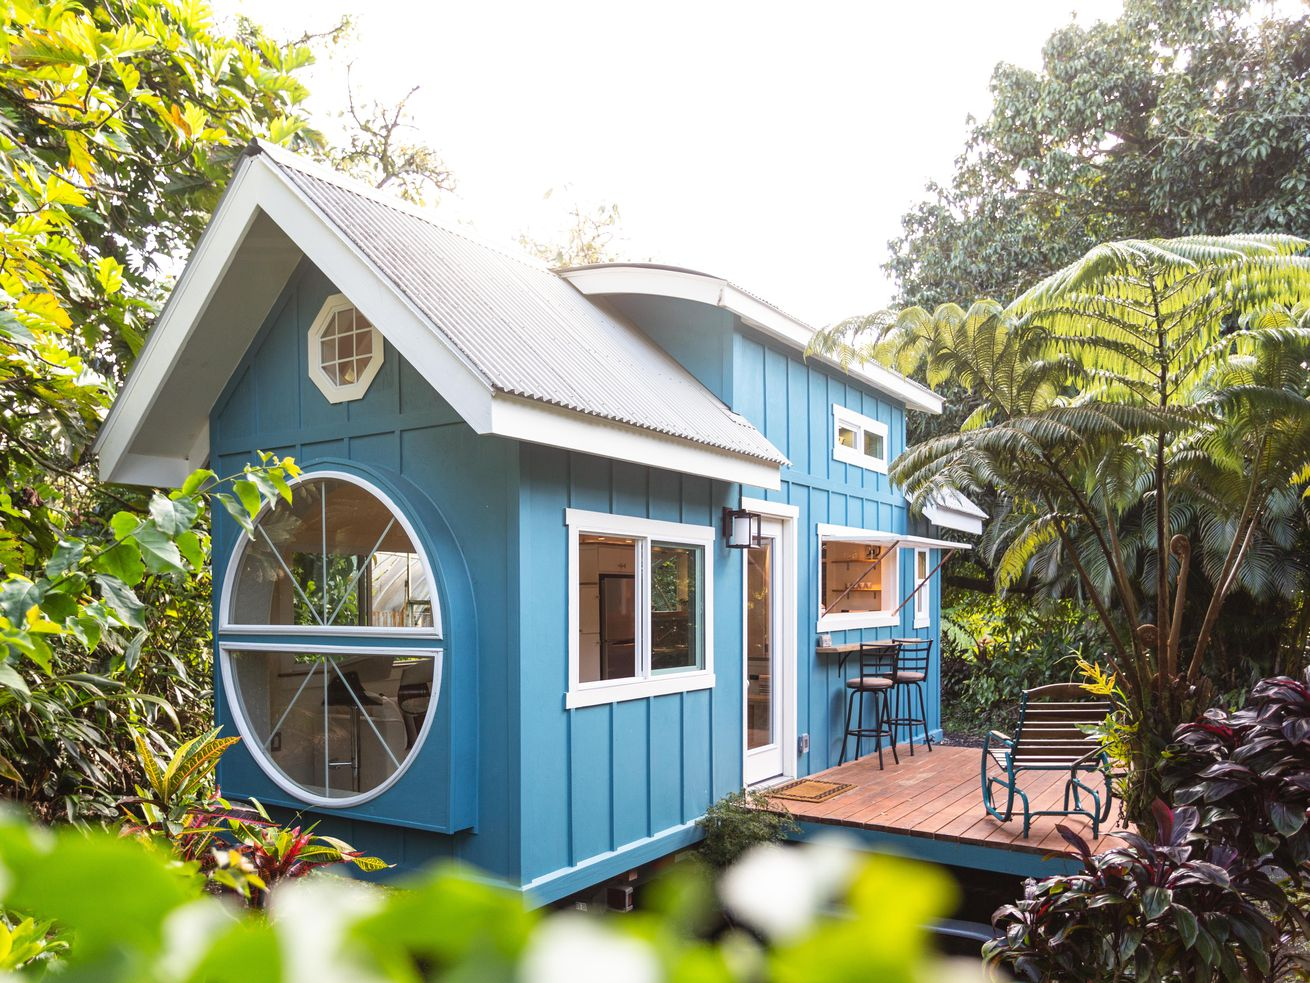 Blue tiny house with round windows at one end.